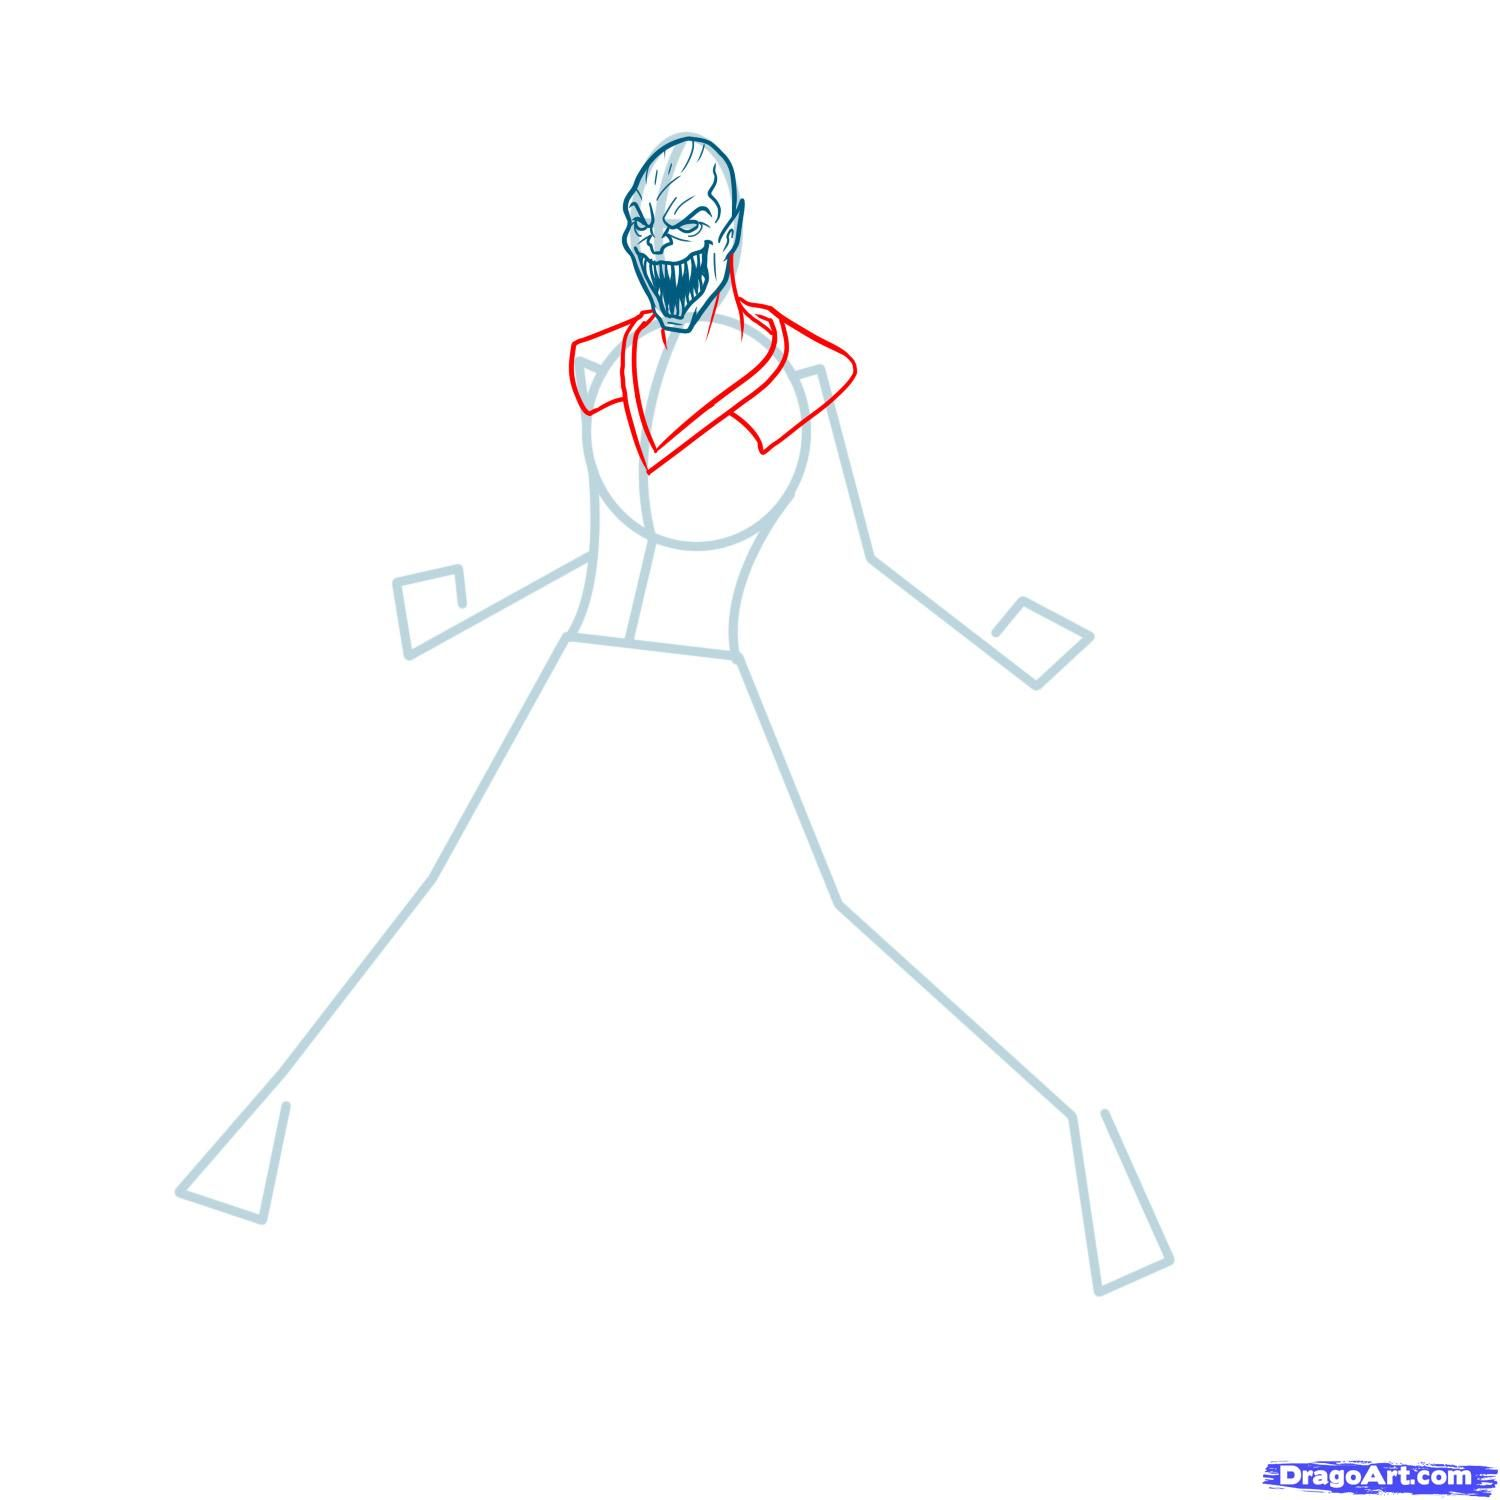 How to draw the Scorpion to the utmost from Mortal Kombat with a pencil step by step 6